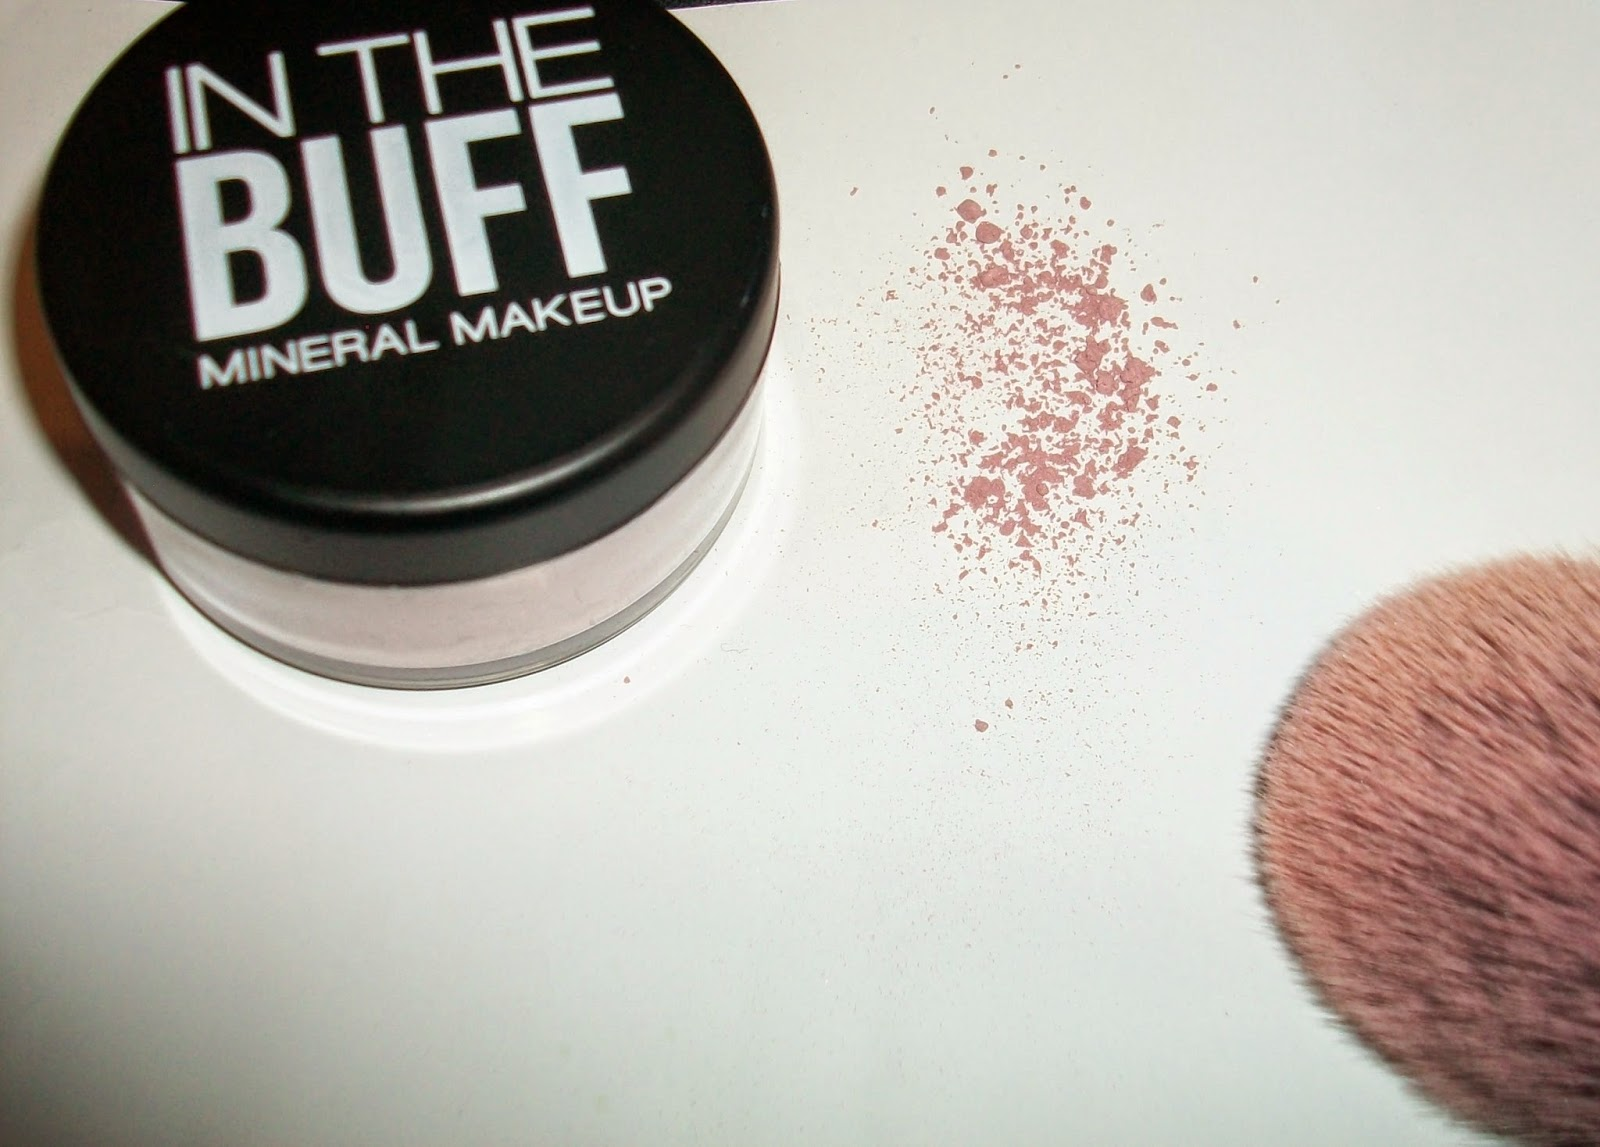 IN THE BUFF MINERAL MAKE UP BLUSH